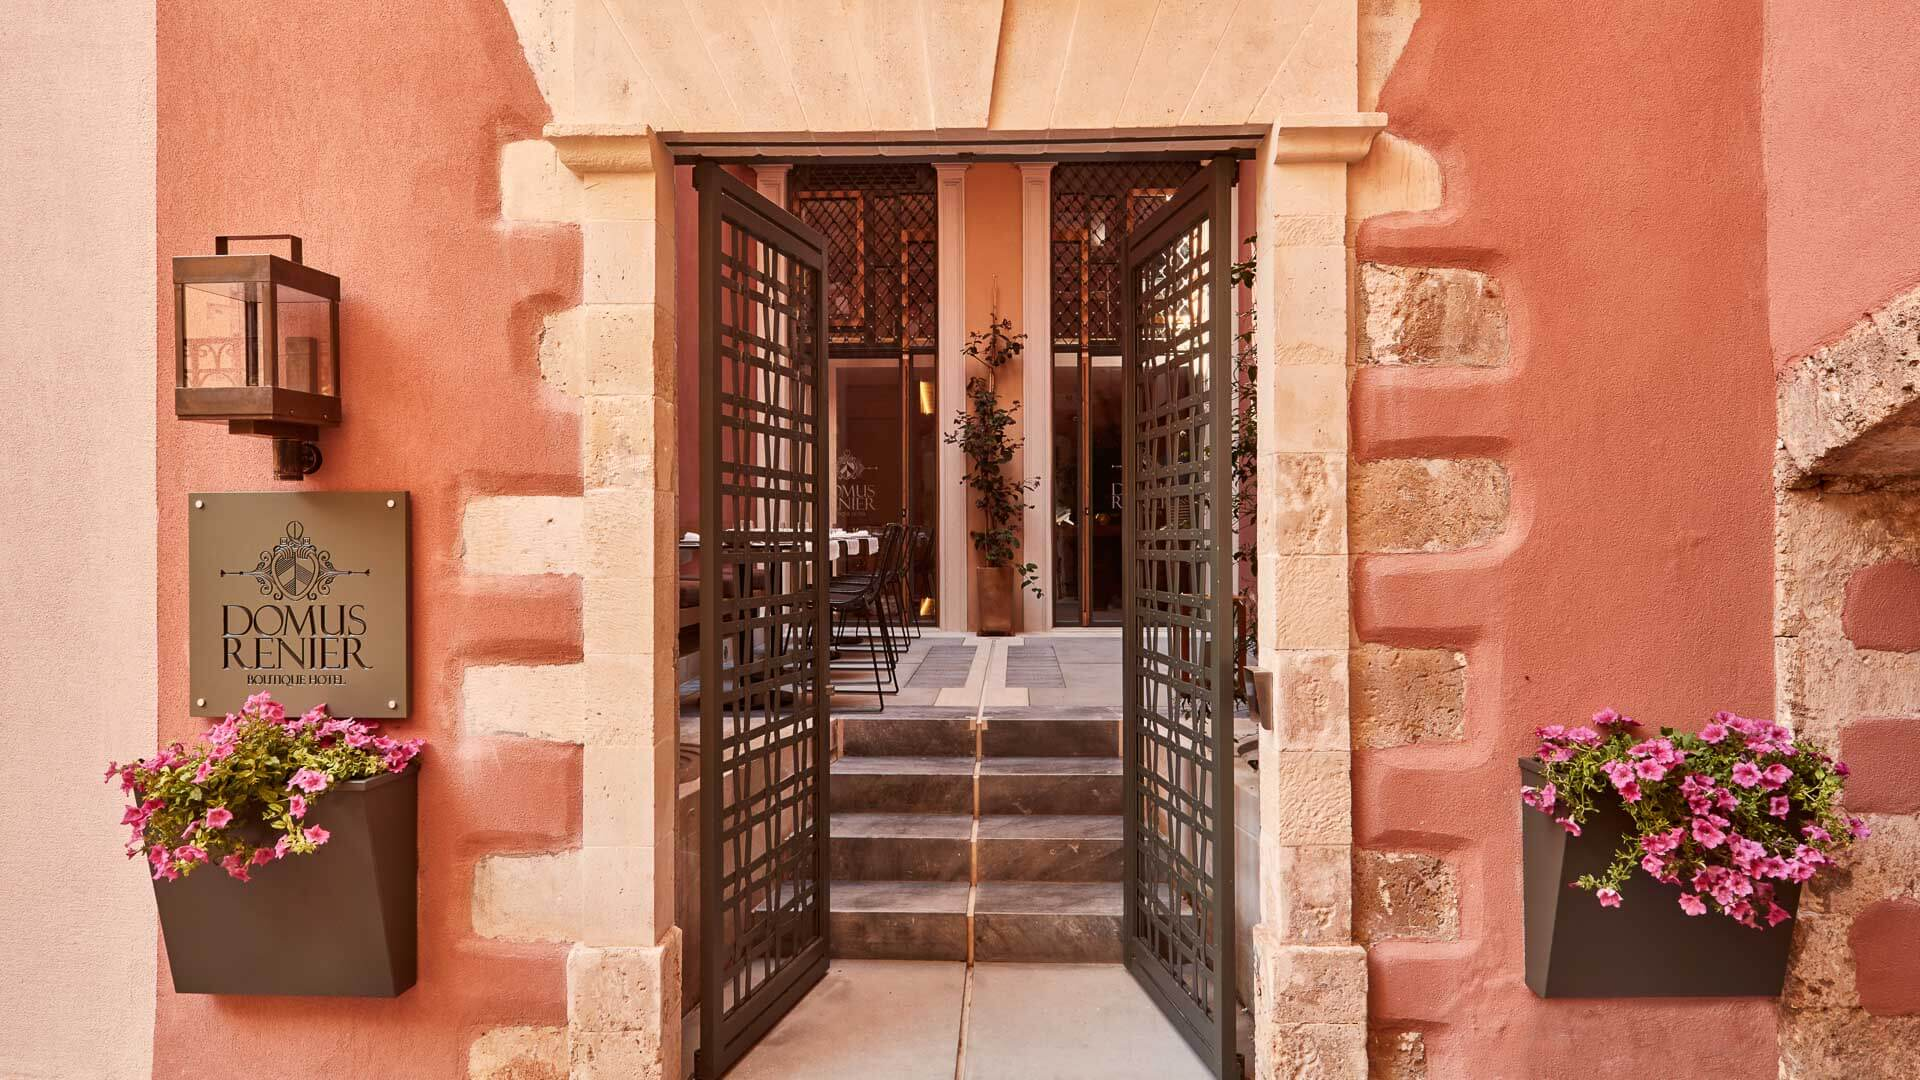 The entrance gate & historic archway to the Domus Renier Boutique Hotel in Chania old town